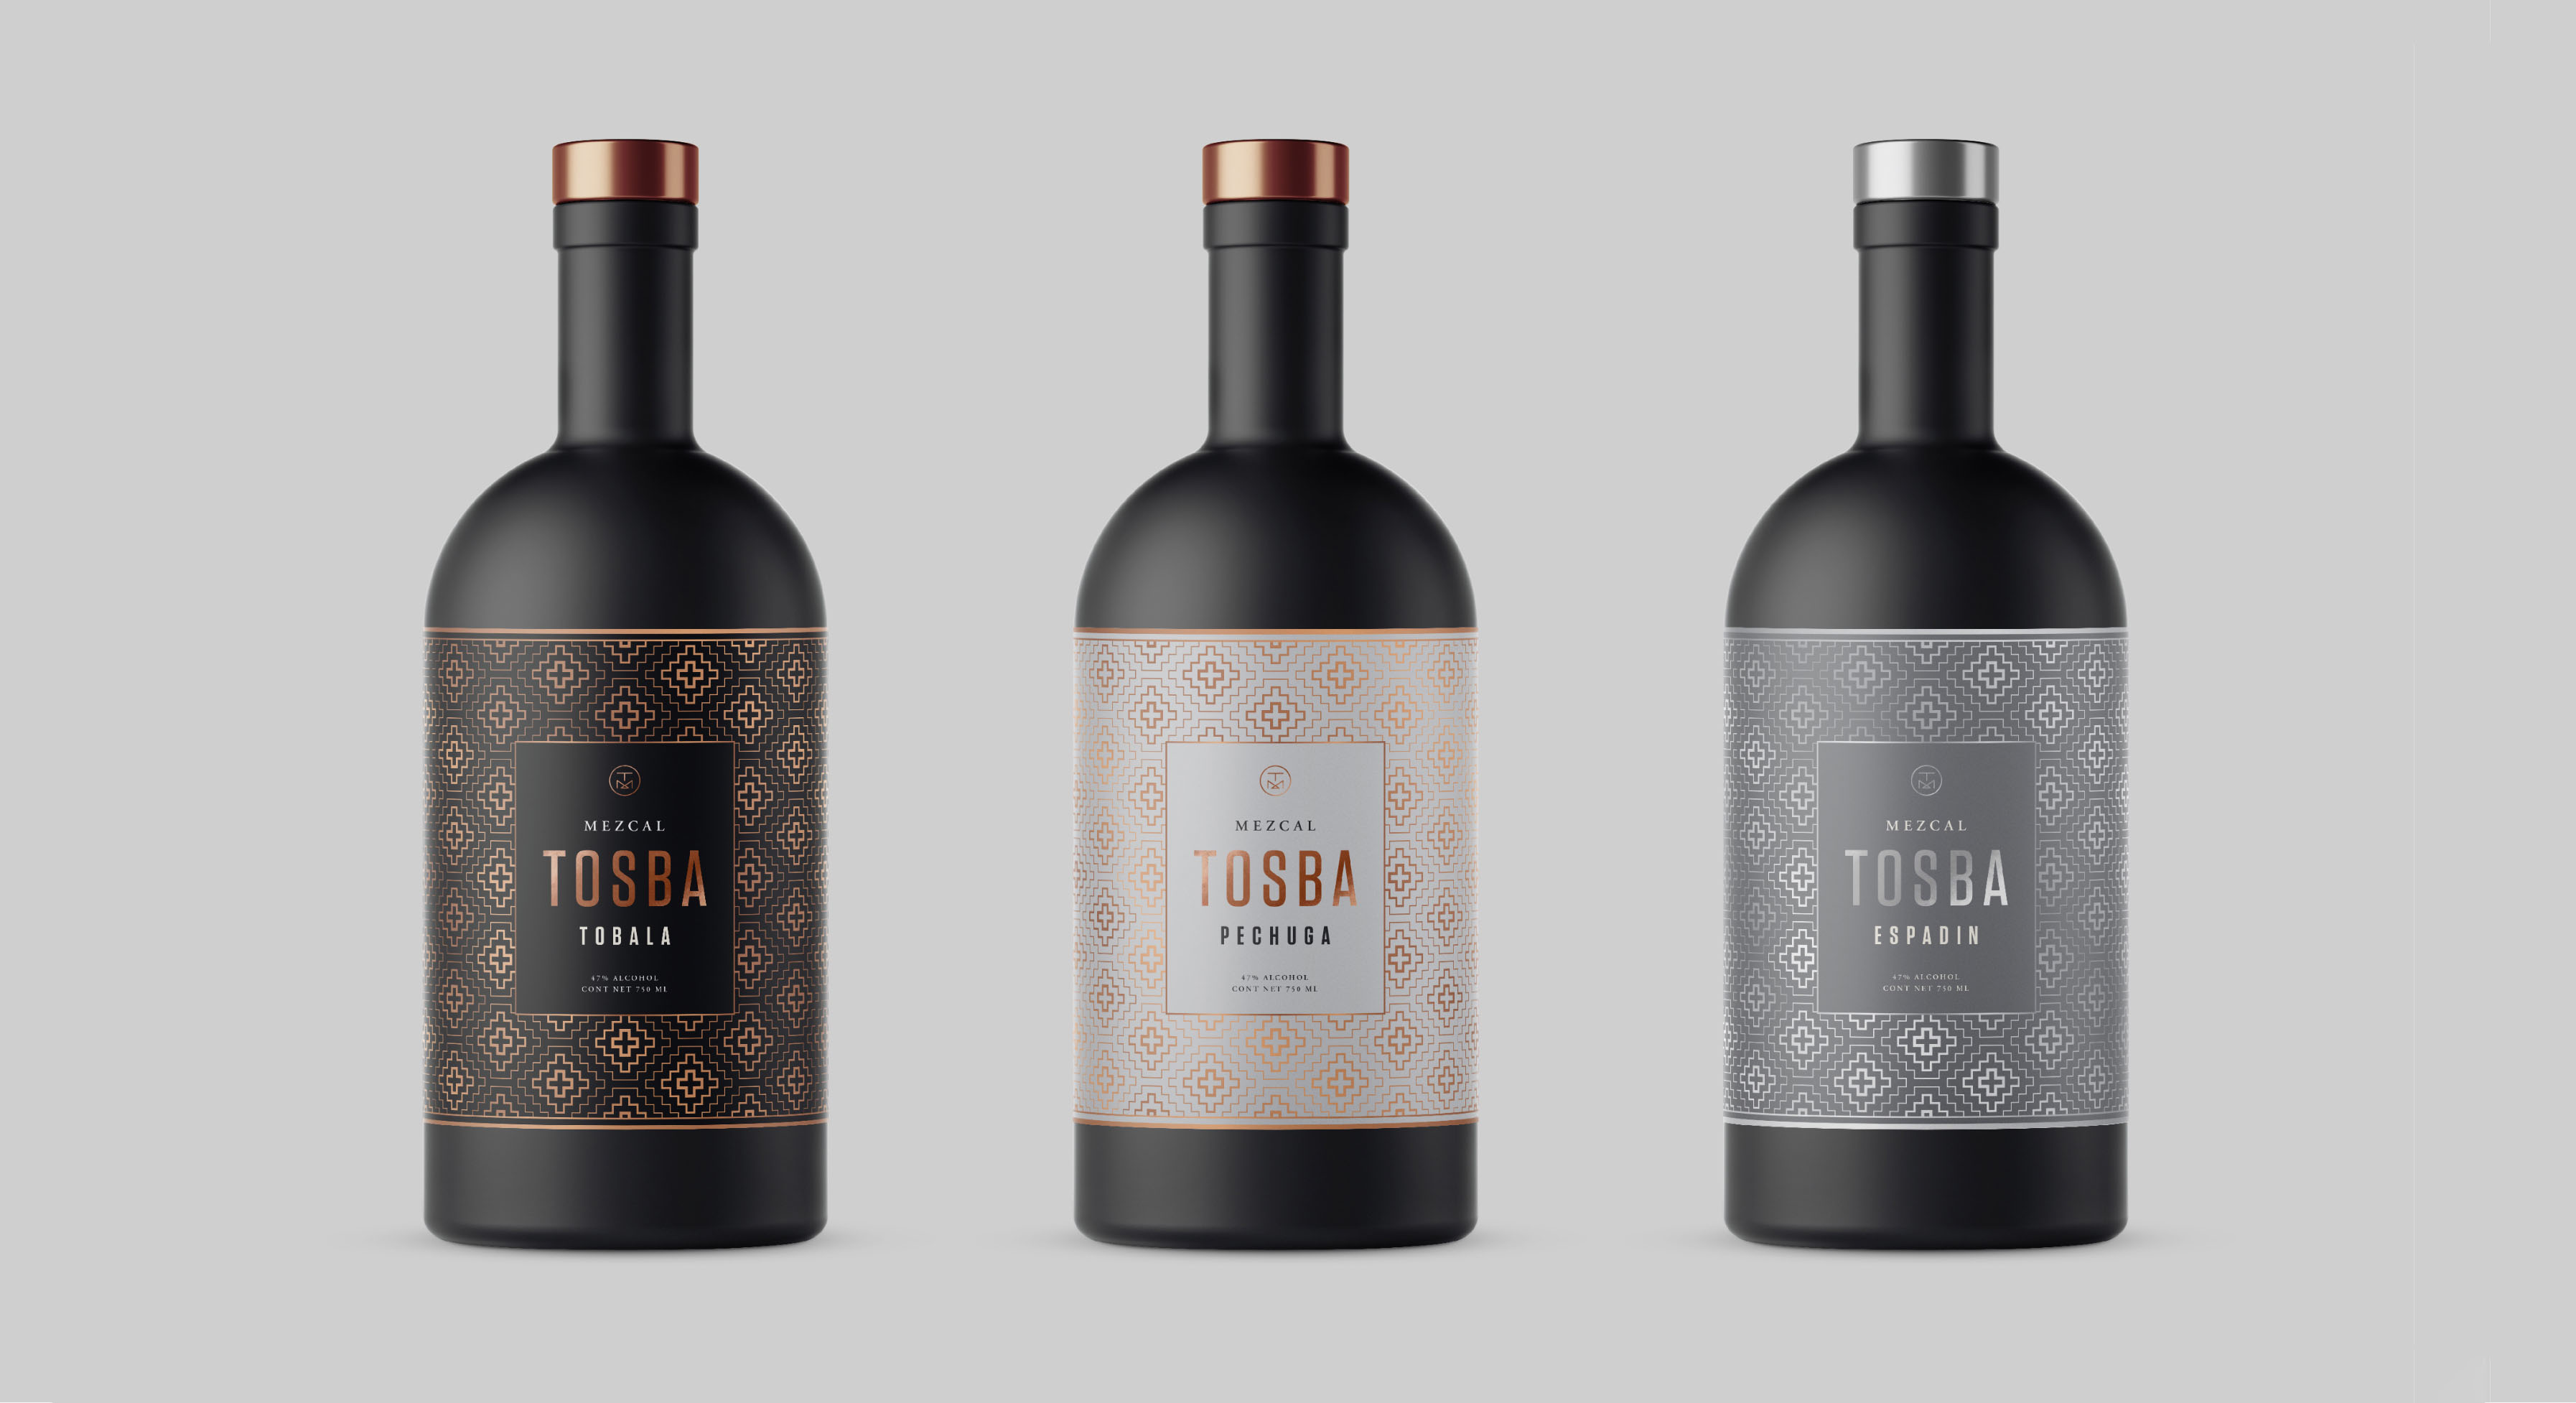 Mezcal Tosba Packaging Design